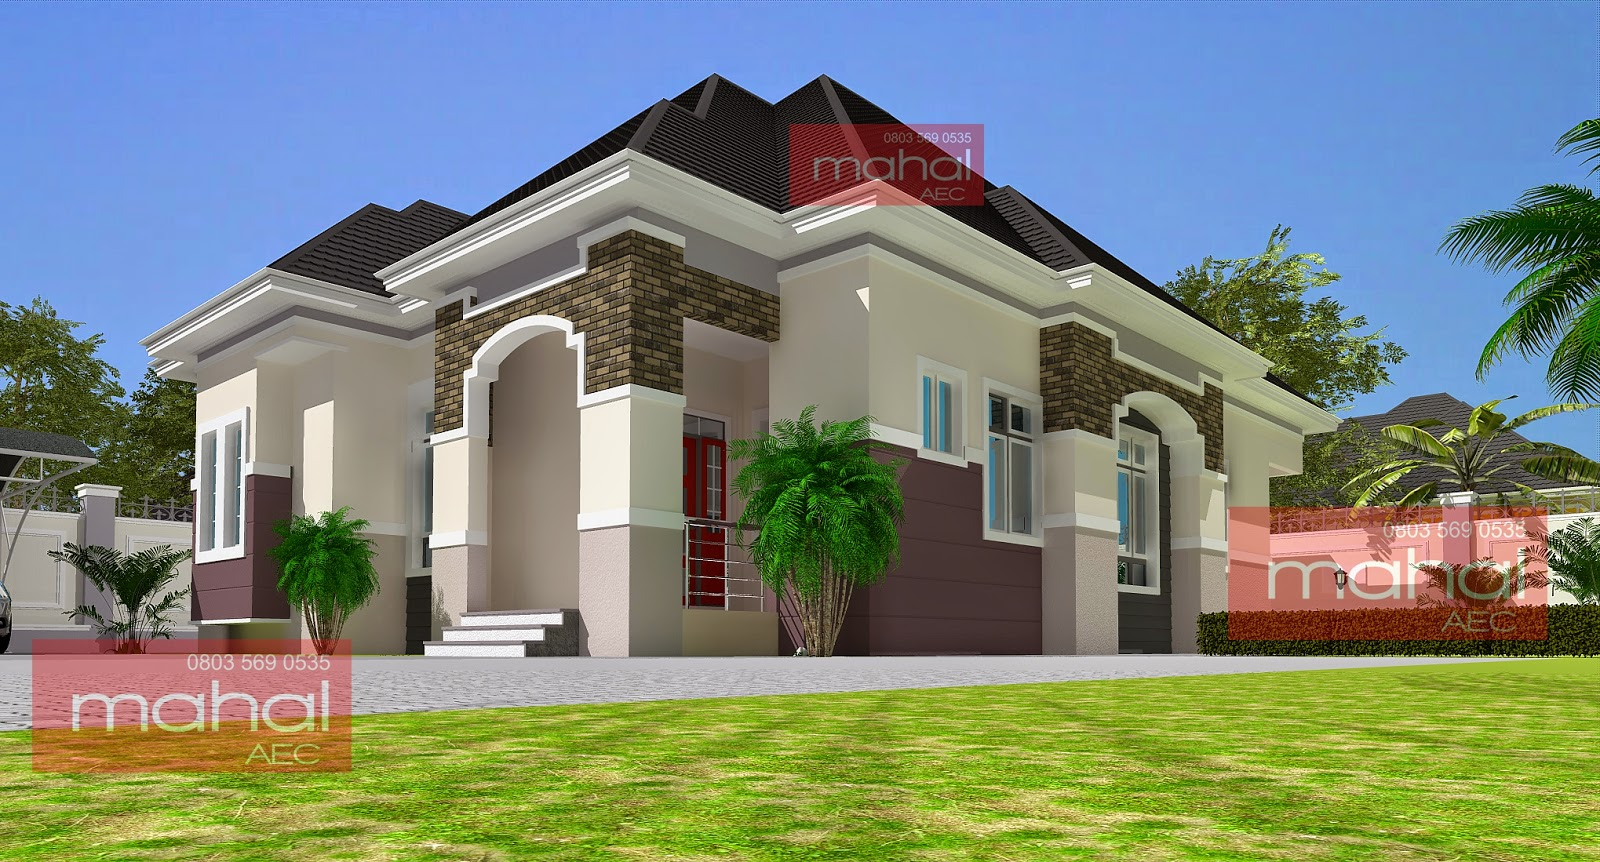 Contemporary Nigerian Residential Architecture August 2014